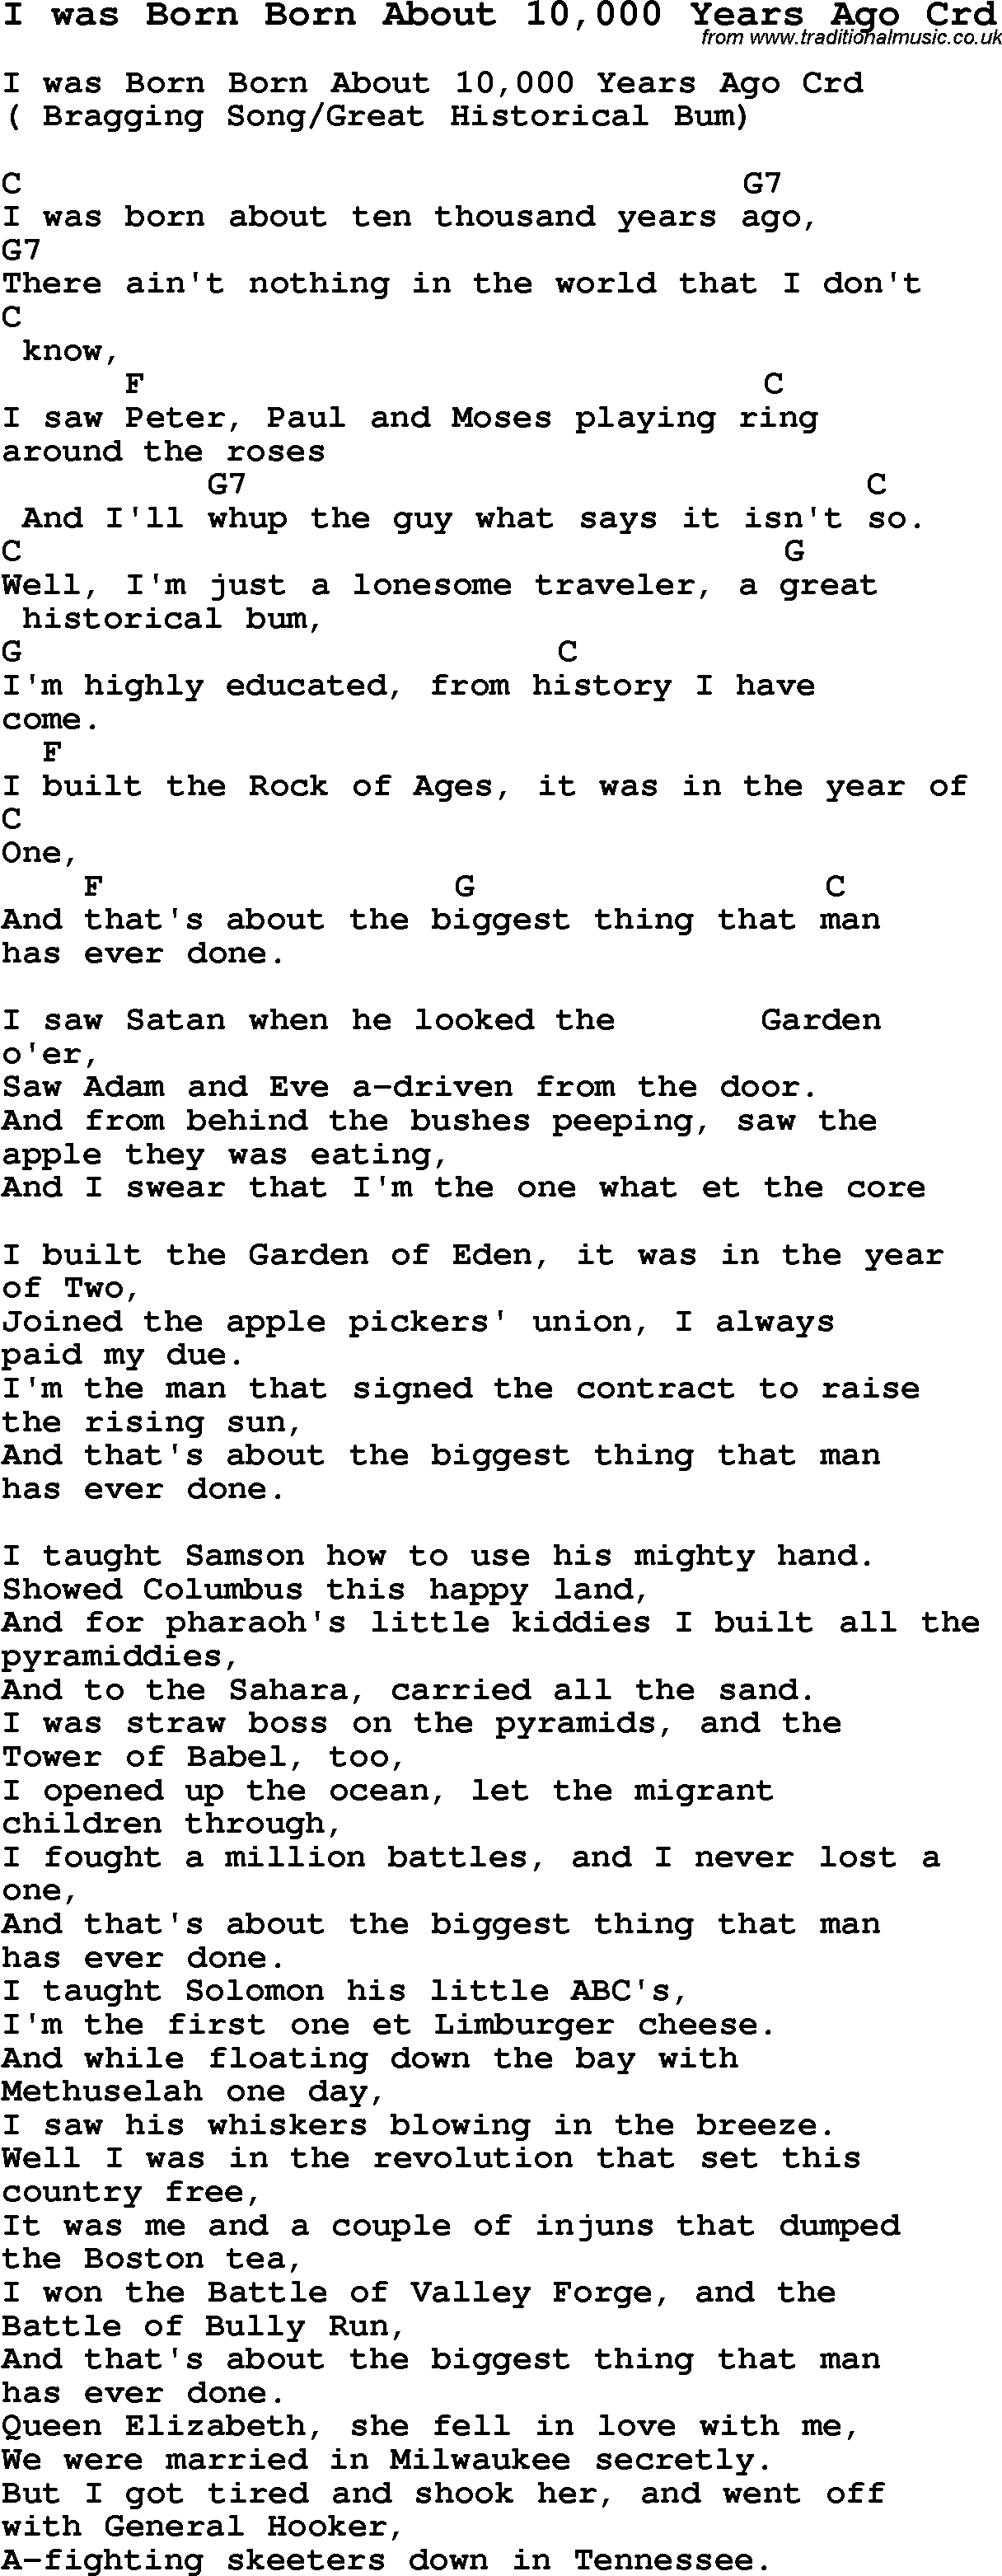 Skiffle Lyrics For I Was Born Born About 10000 Years Ago With